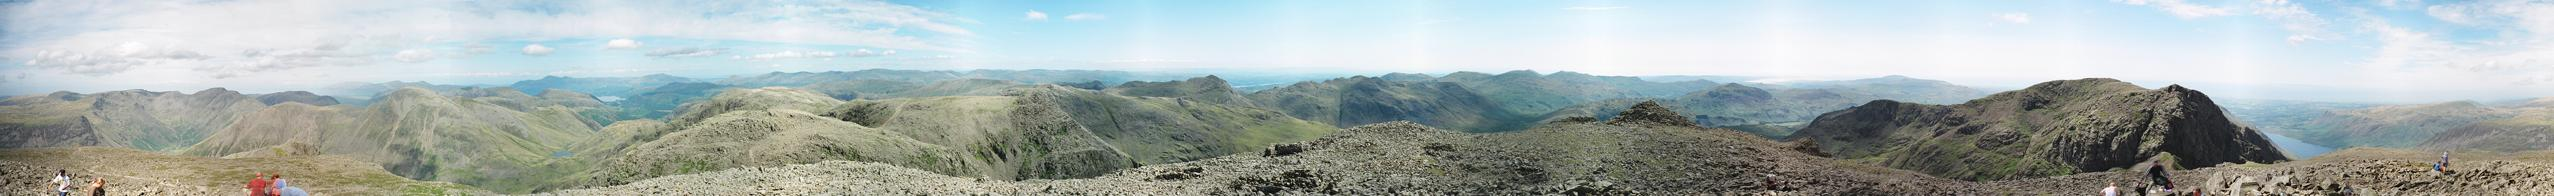 Scafell Pike - Complete Panorama